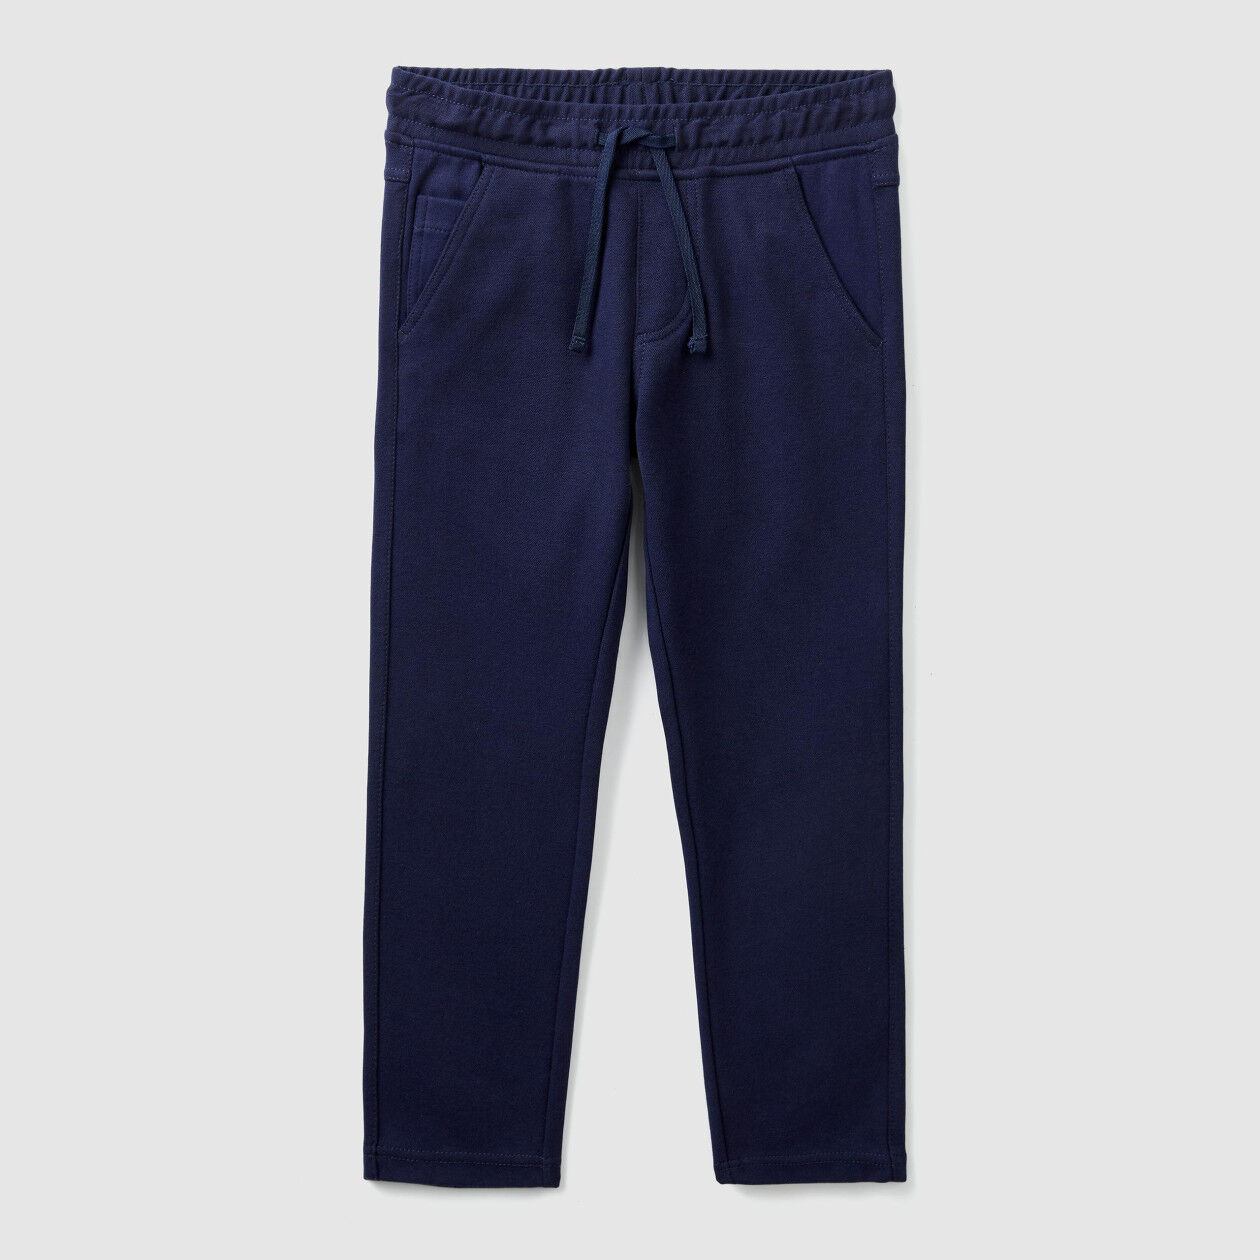 Slim fit pique trousers